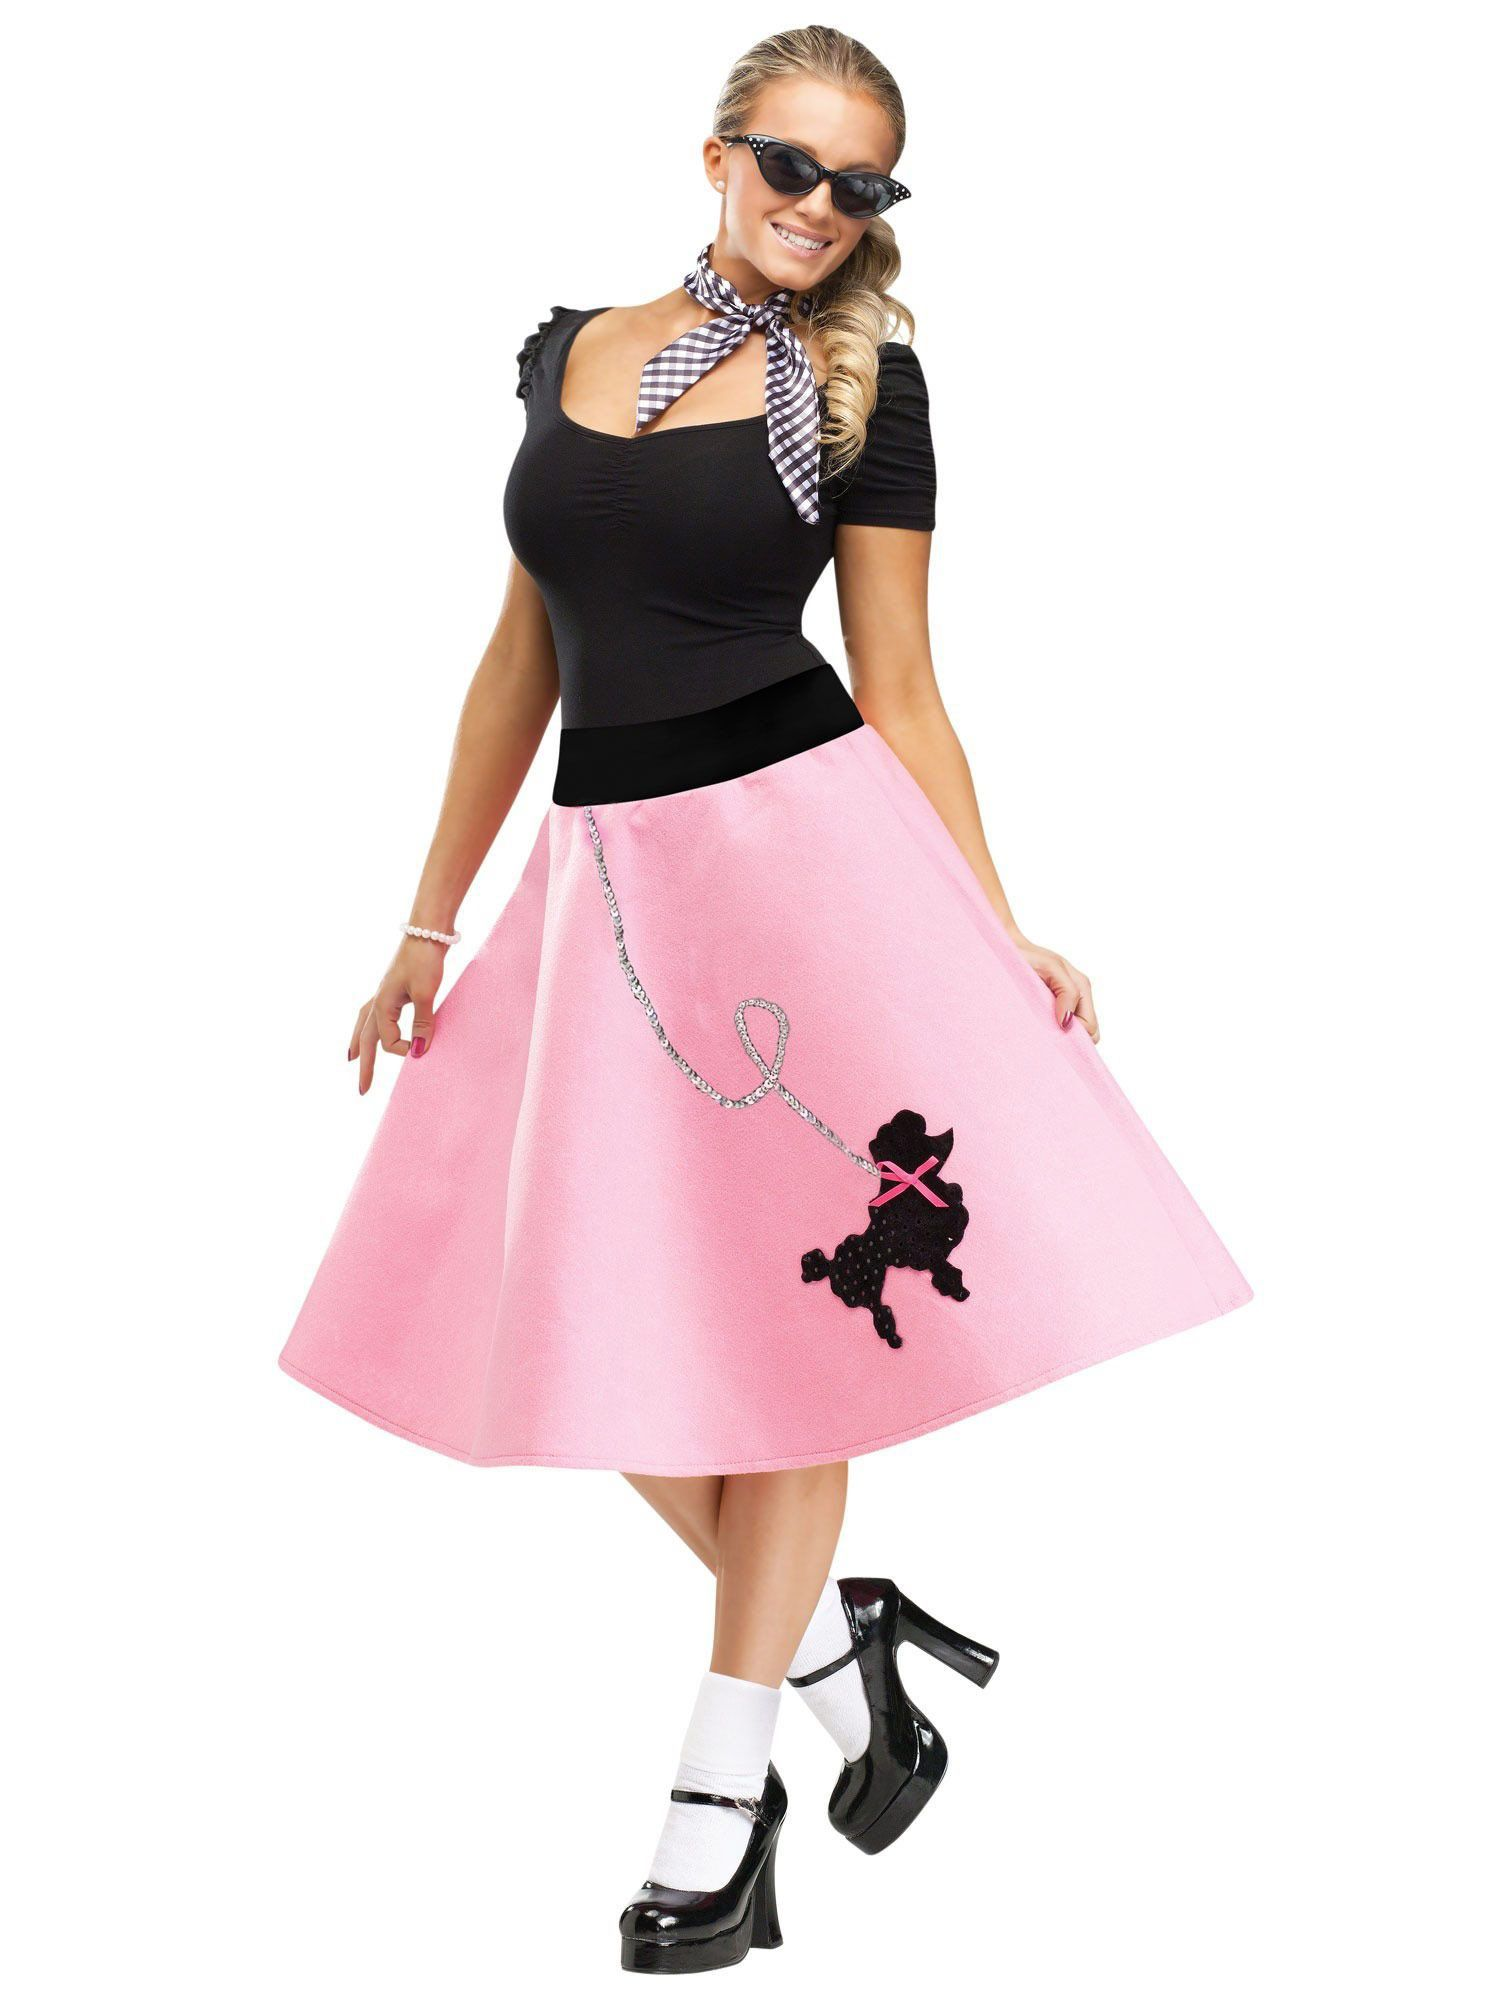 50s Pink Poodle Skirt Adult  sc 1 st  Wholesale Halloween Costumes & 50s Pink Poodle Skirt Adult - Womens Costumes for 2018 | Wholesale ...